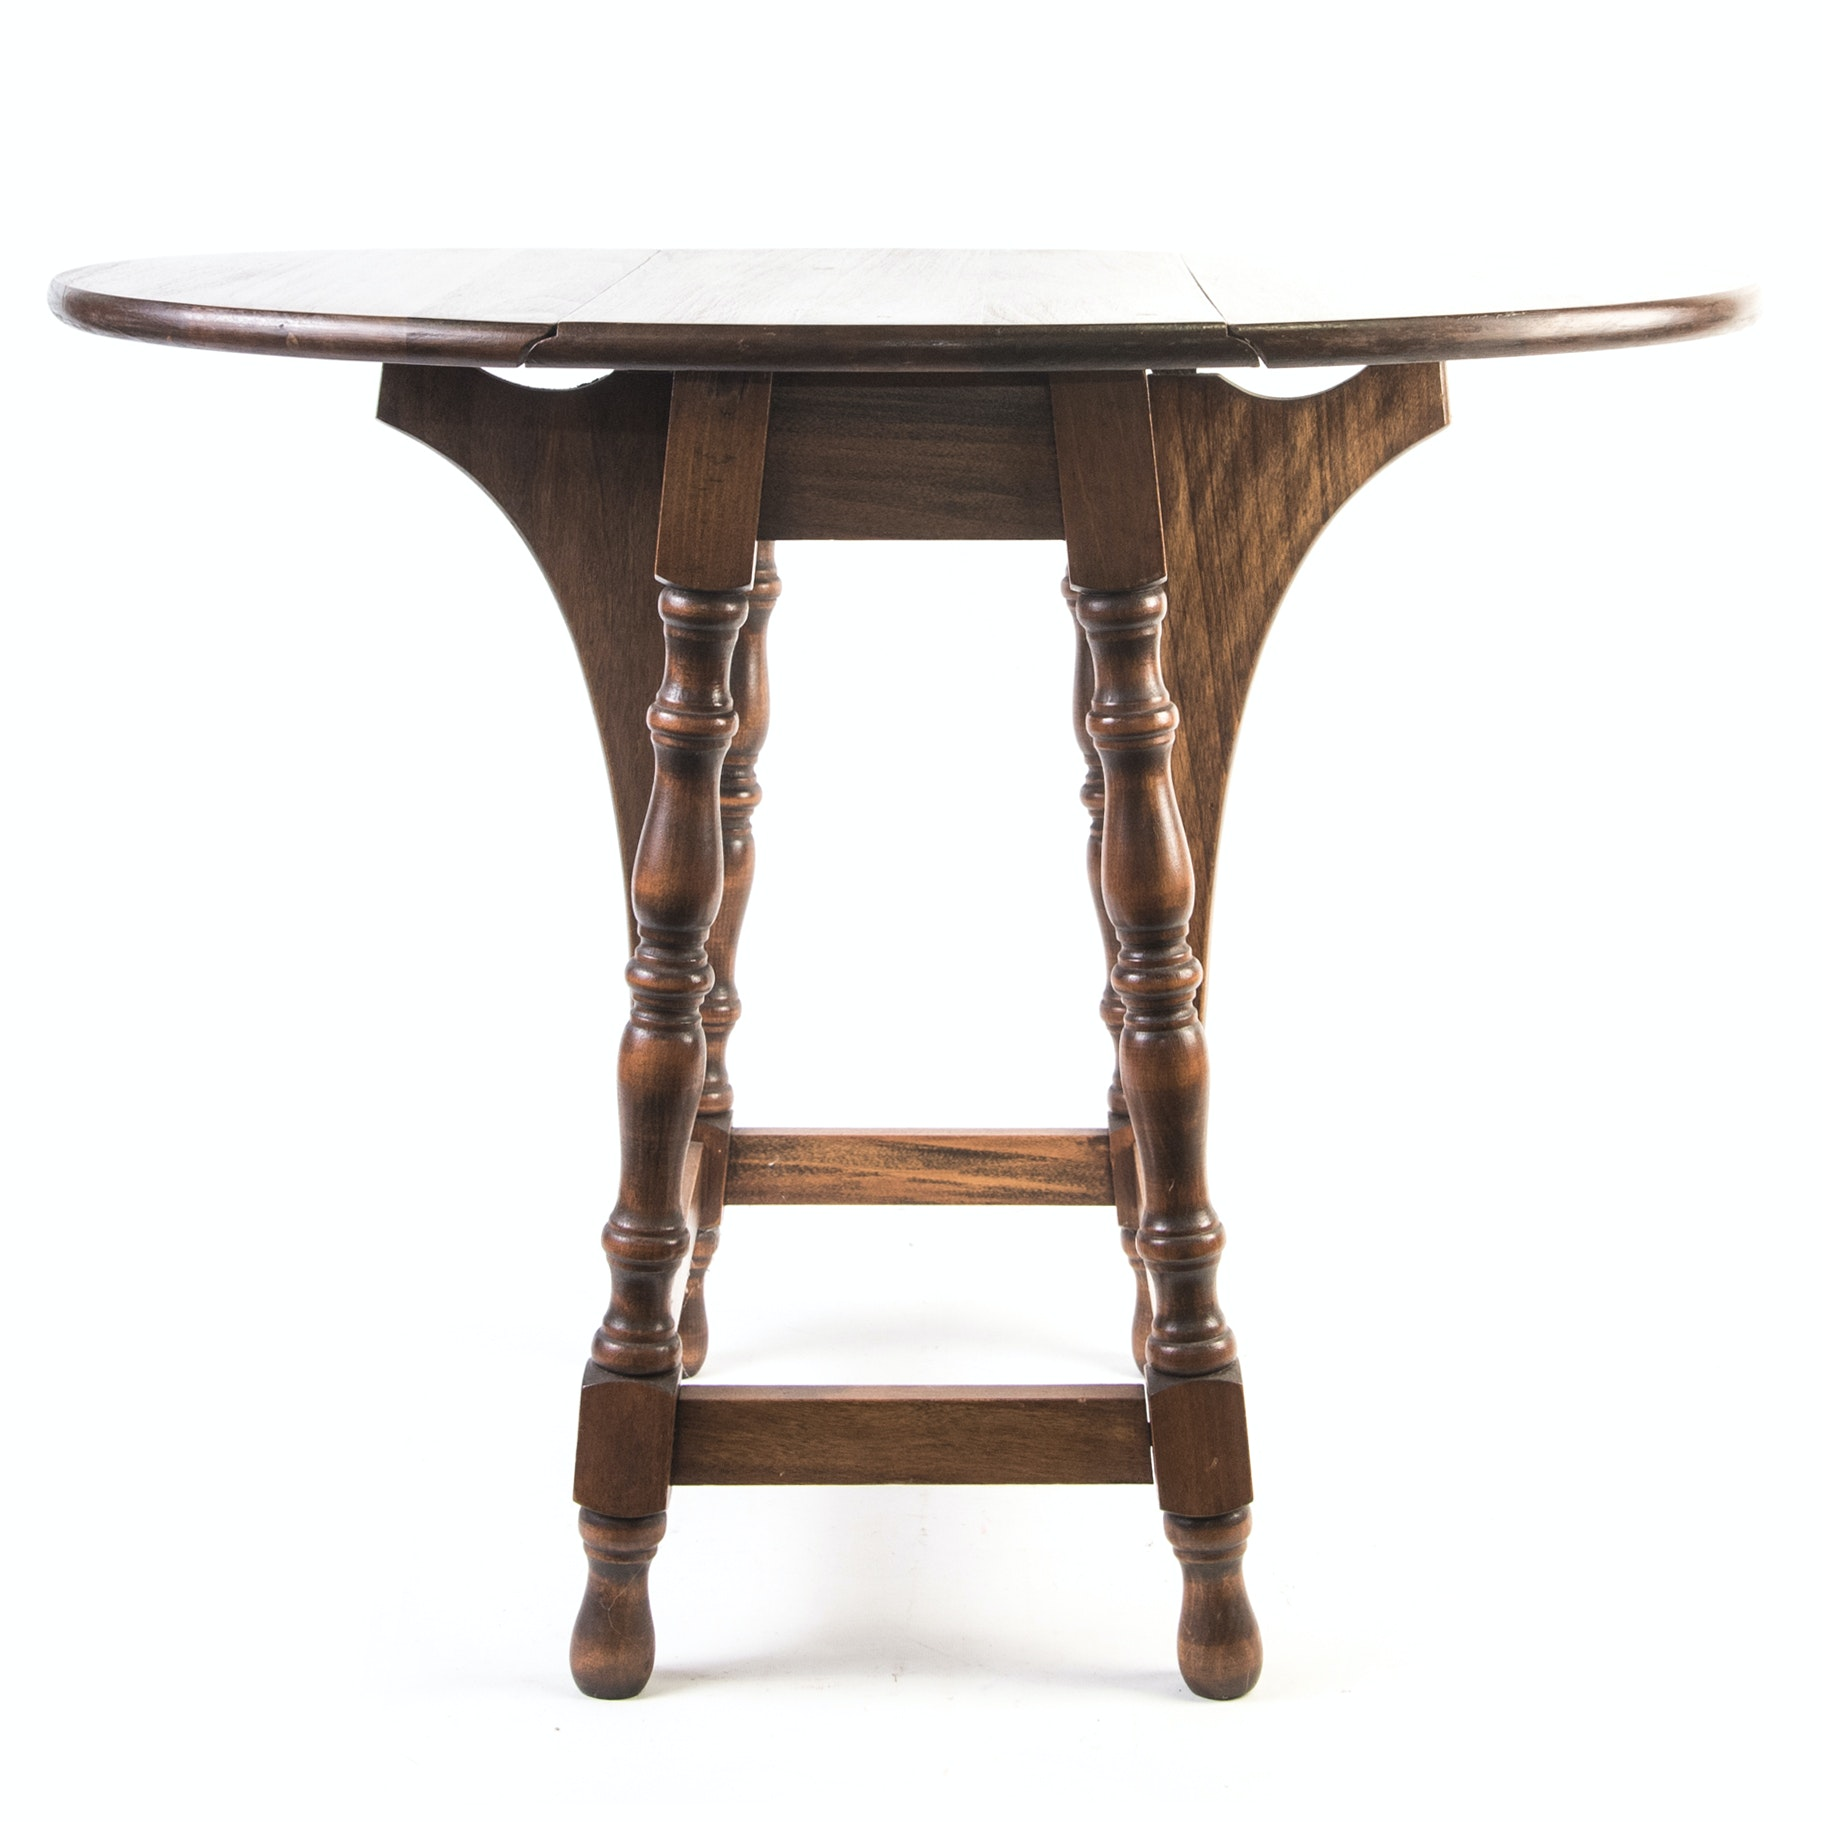 Diminutive Walnut William and Mary Revival Drop Leaf Table